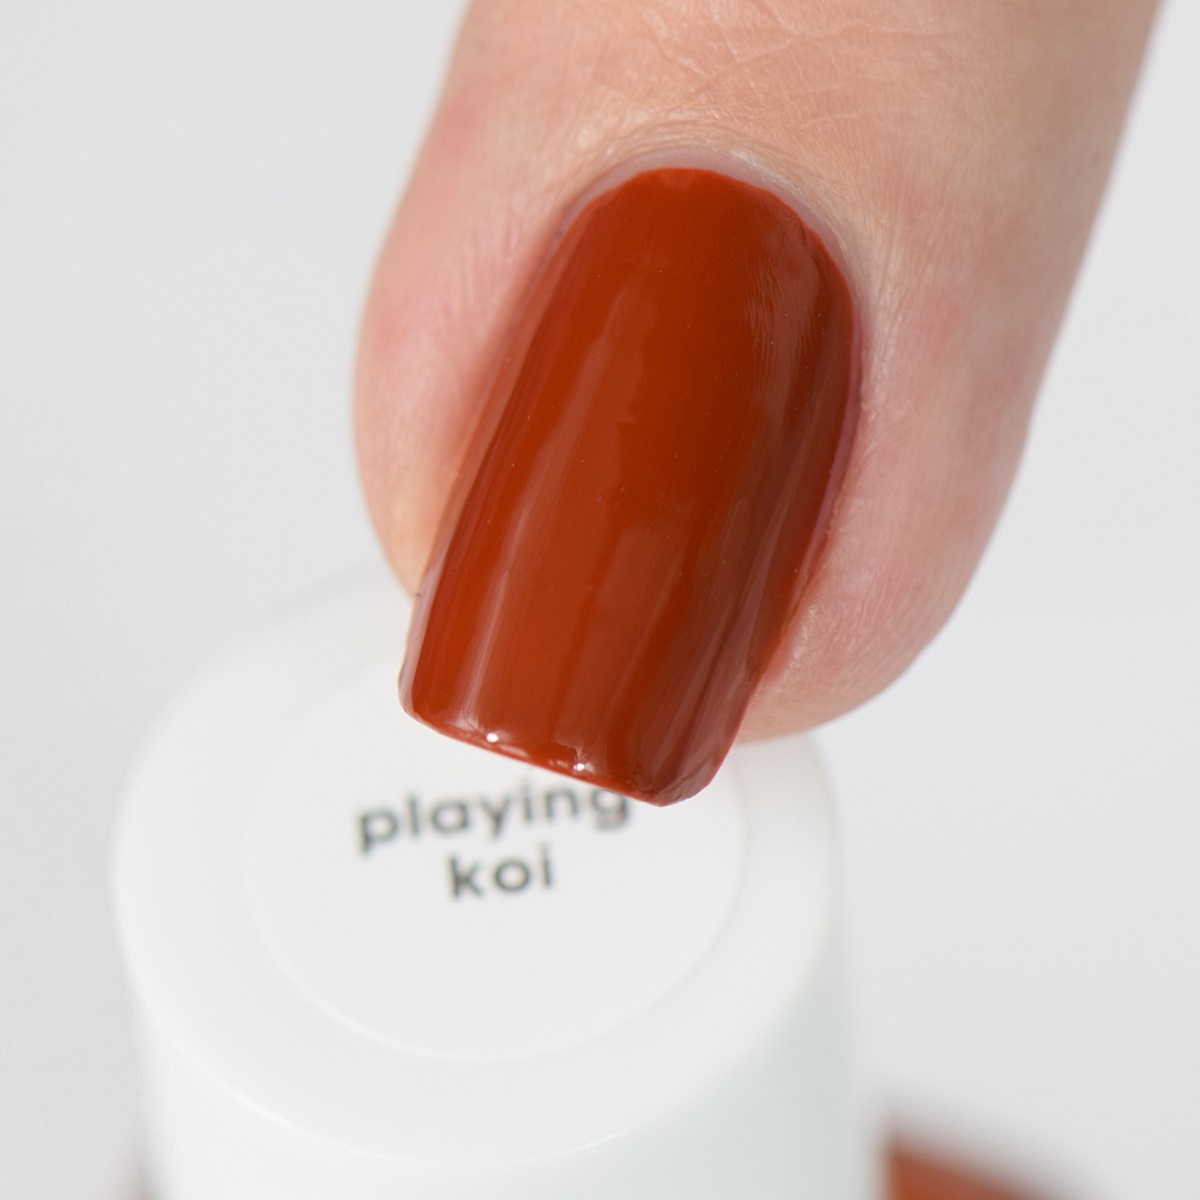 essie fall 2016 playing koi Swatches Nagellack Blog Review